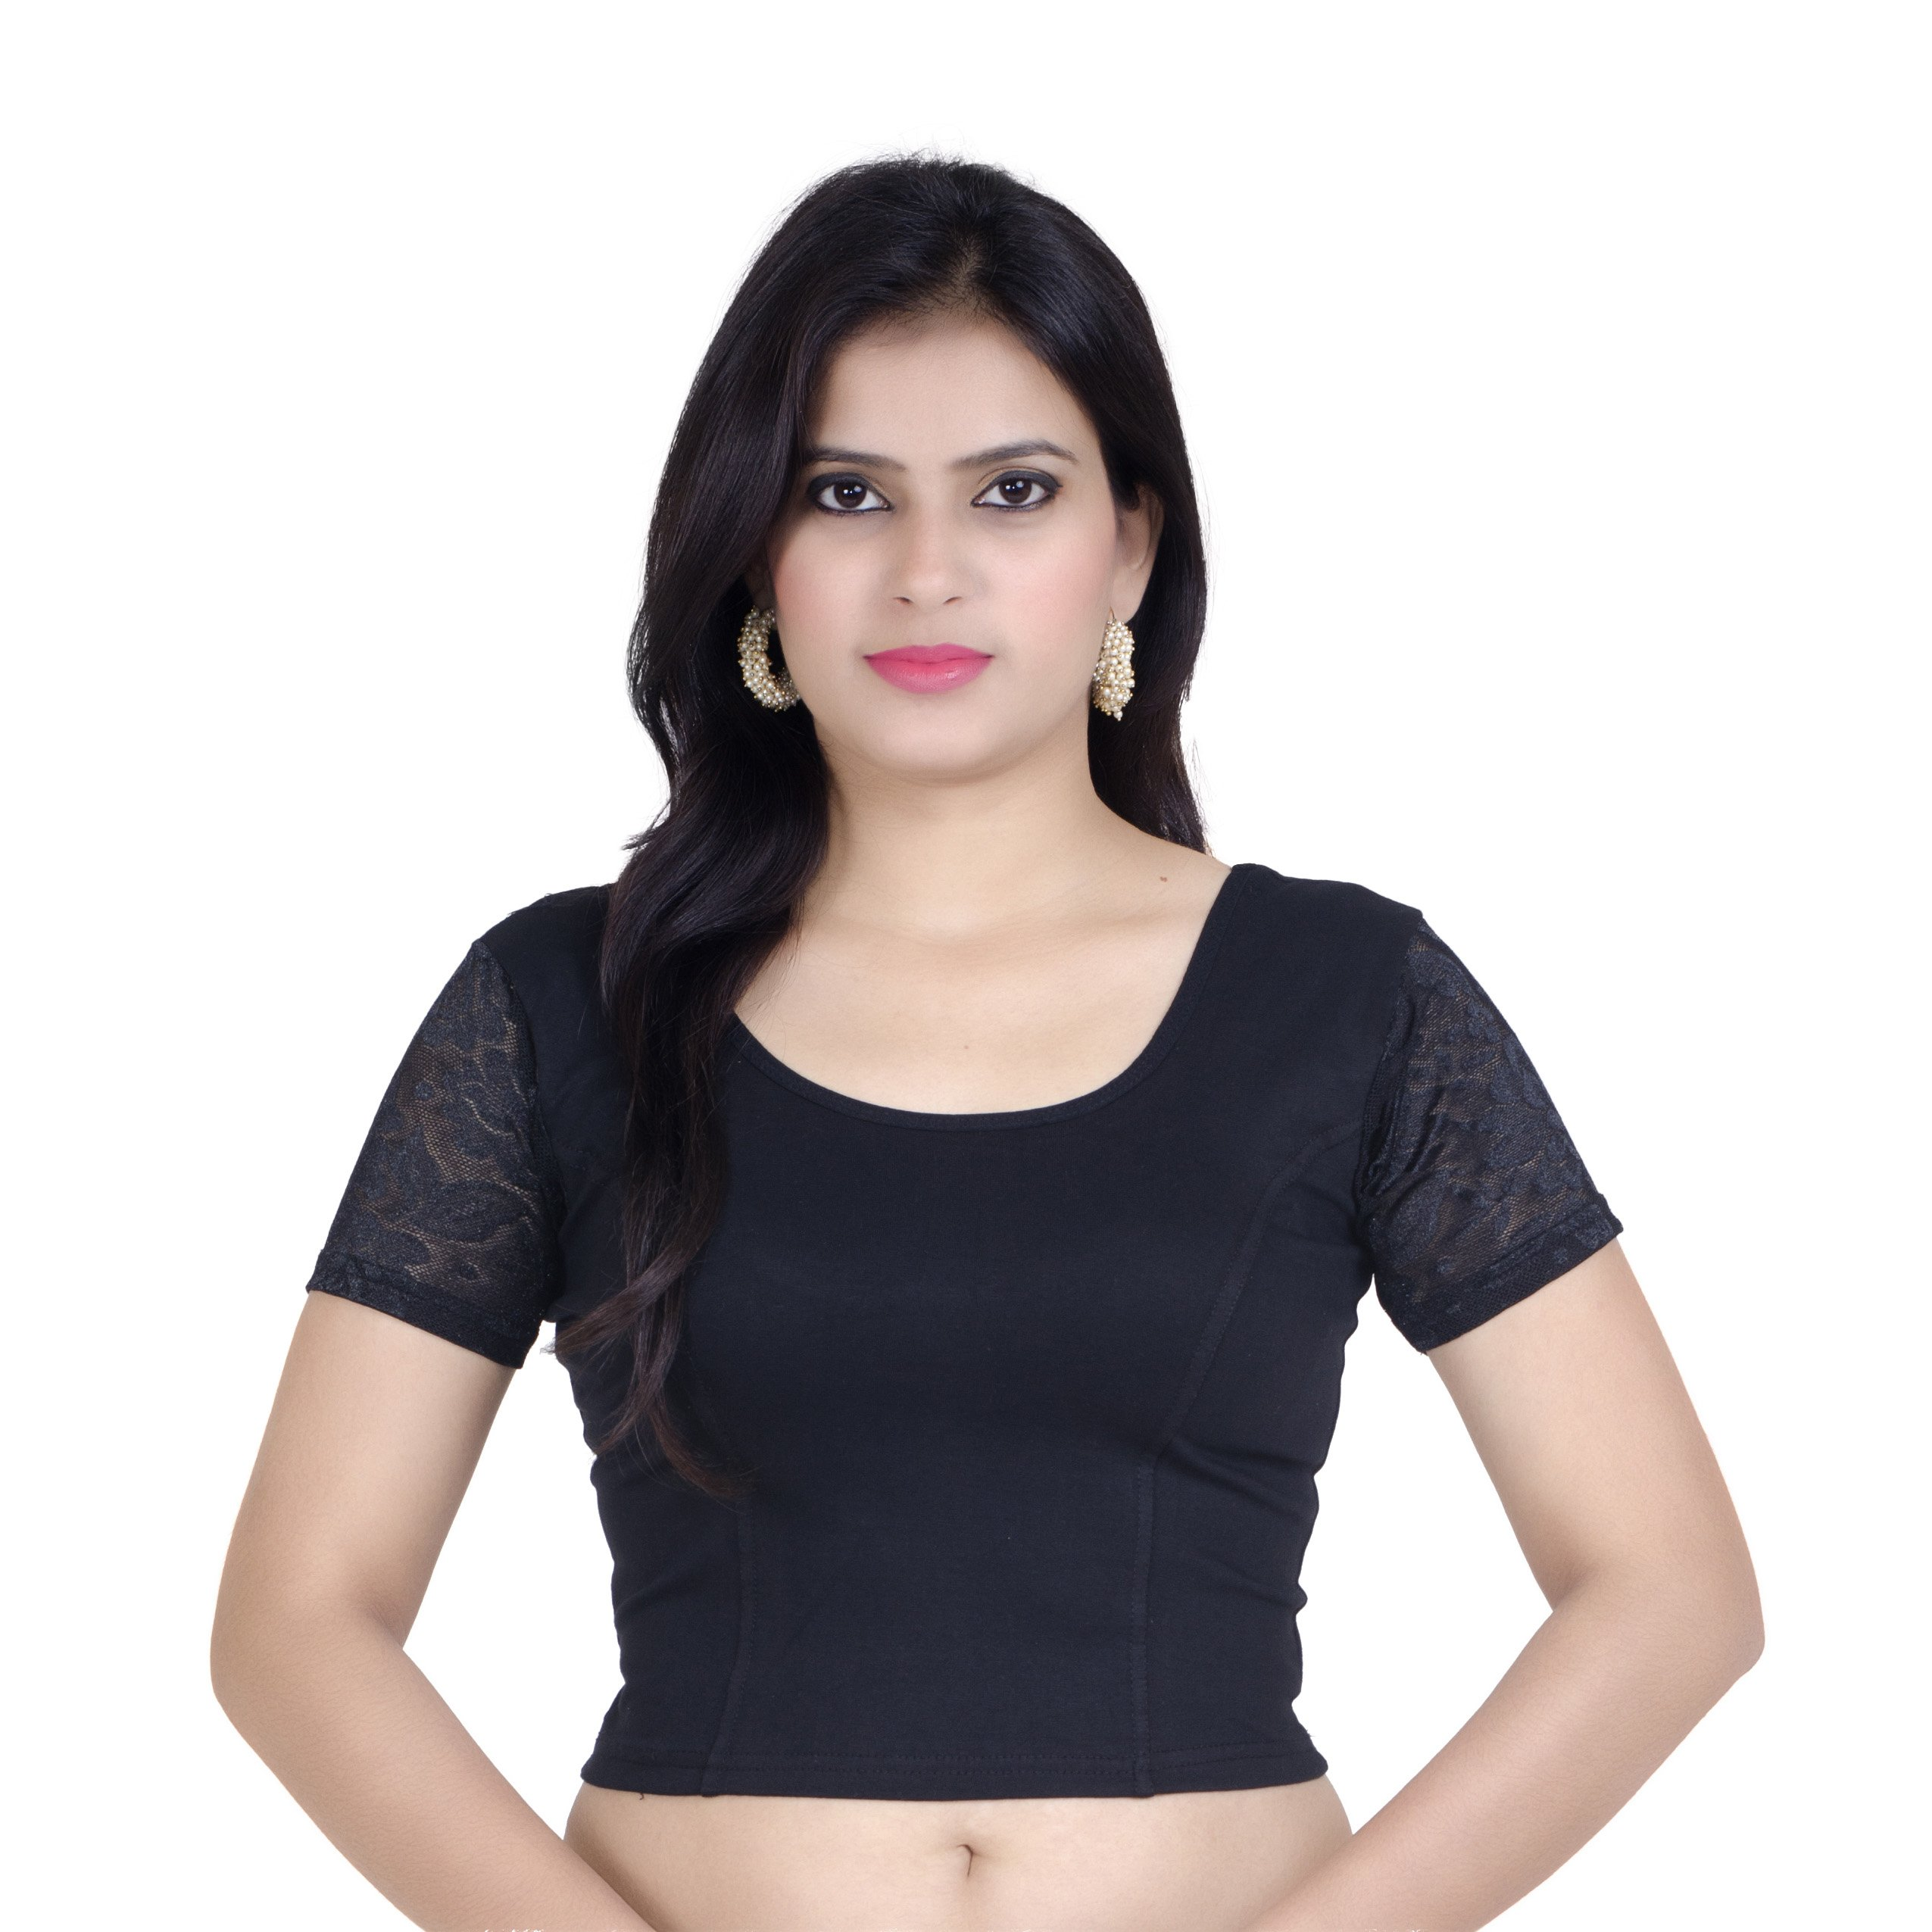 Chandrakala Womens Stretchable Readymade Black Saree Blouse Crop Top Choli,Black,Free Size